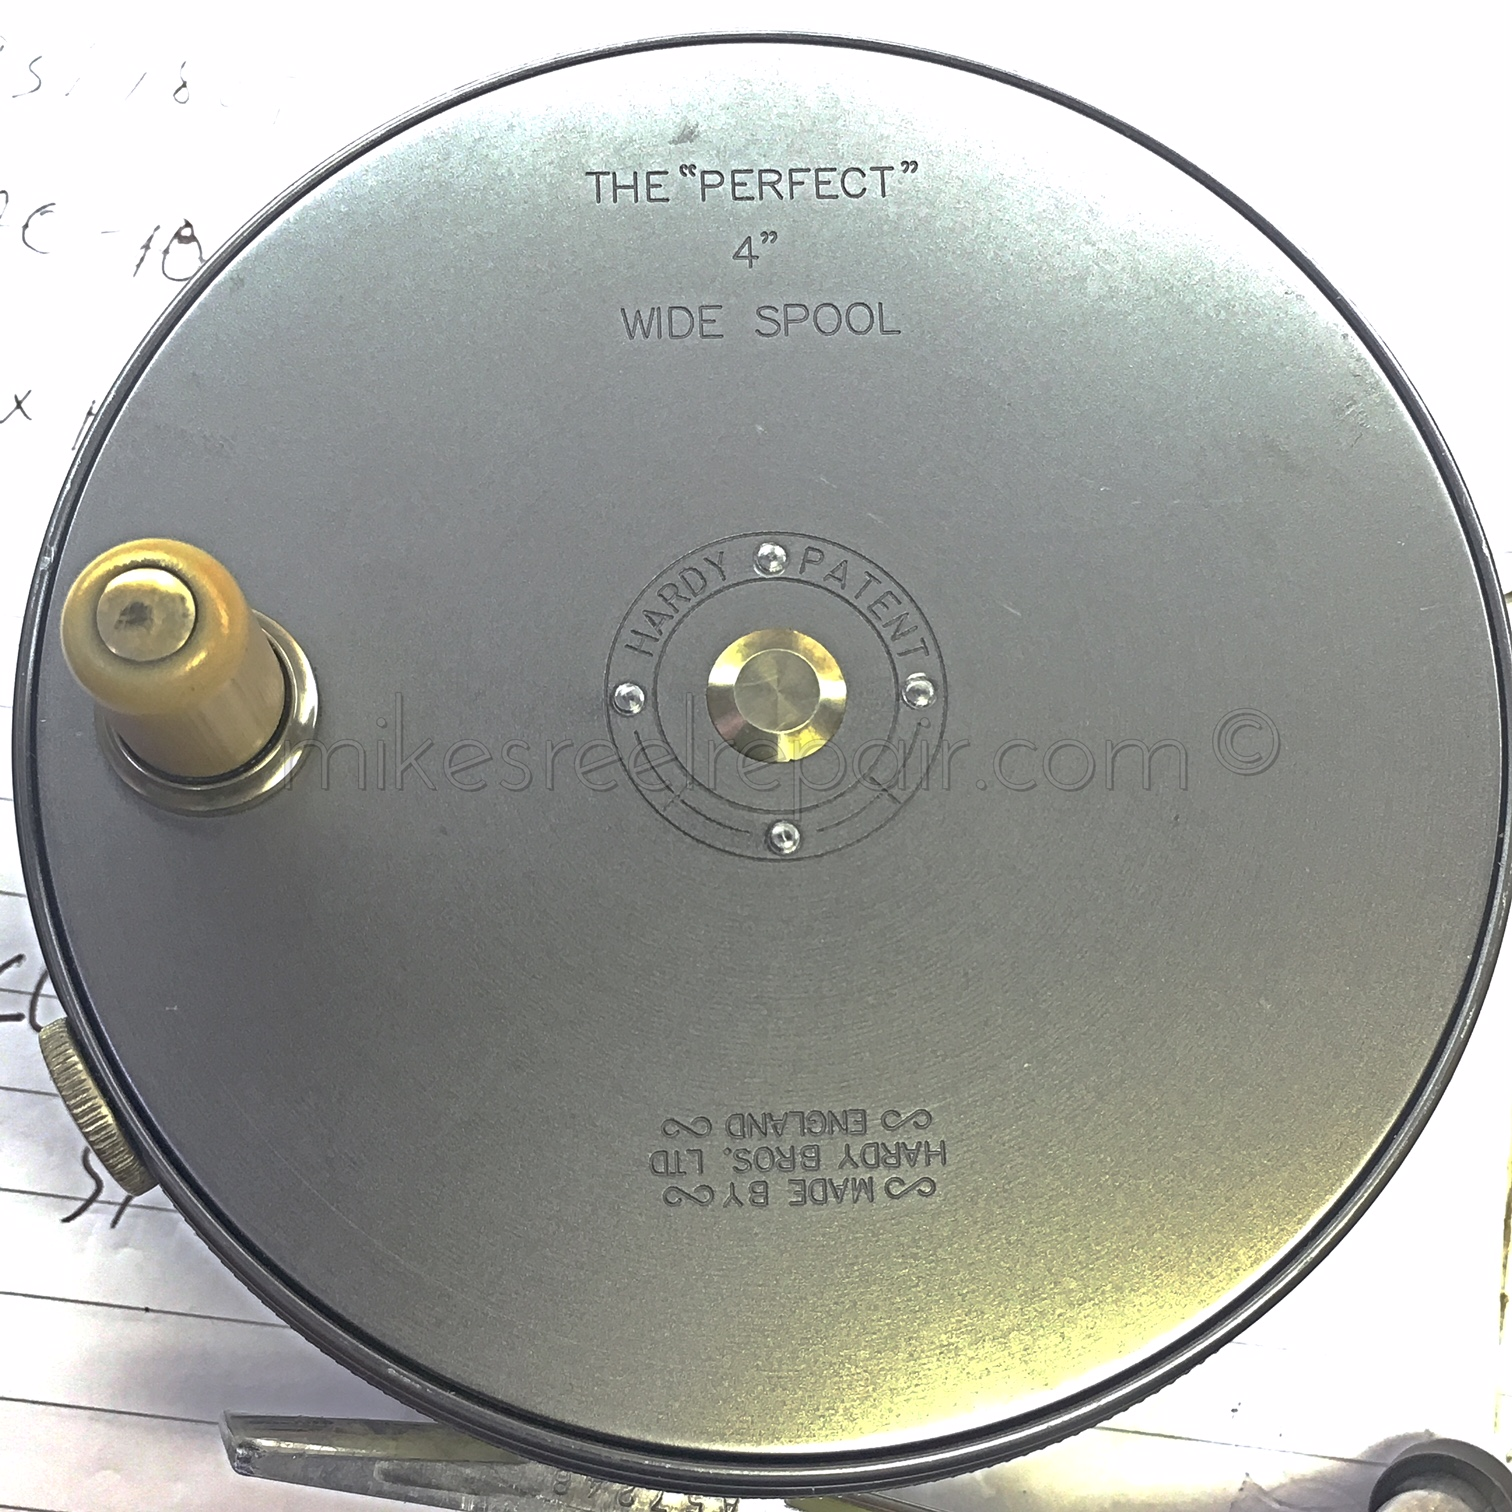 Hardy perfect center screw broken mikes reel repair we have the tools and knowhow not to mention the parts to repair that favorite reel of yours pooptronica Images